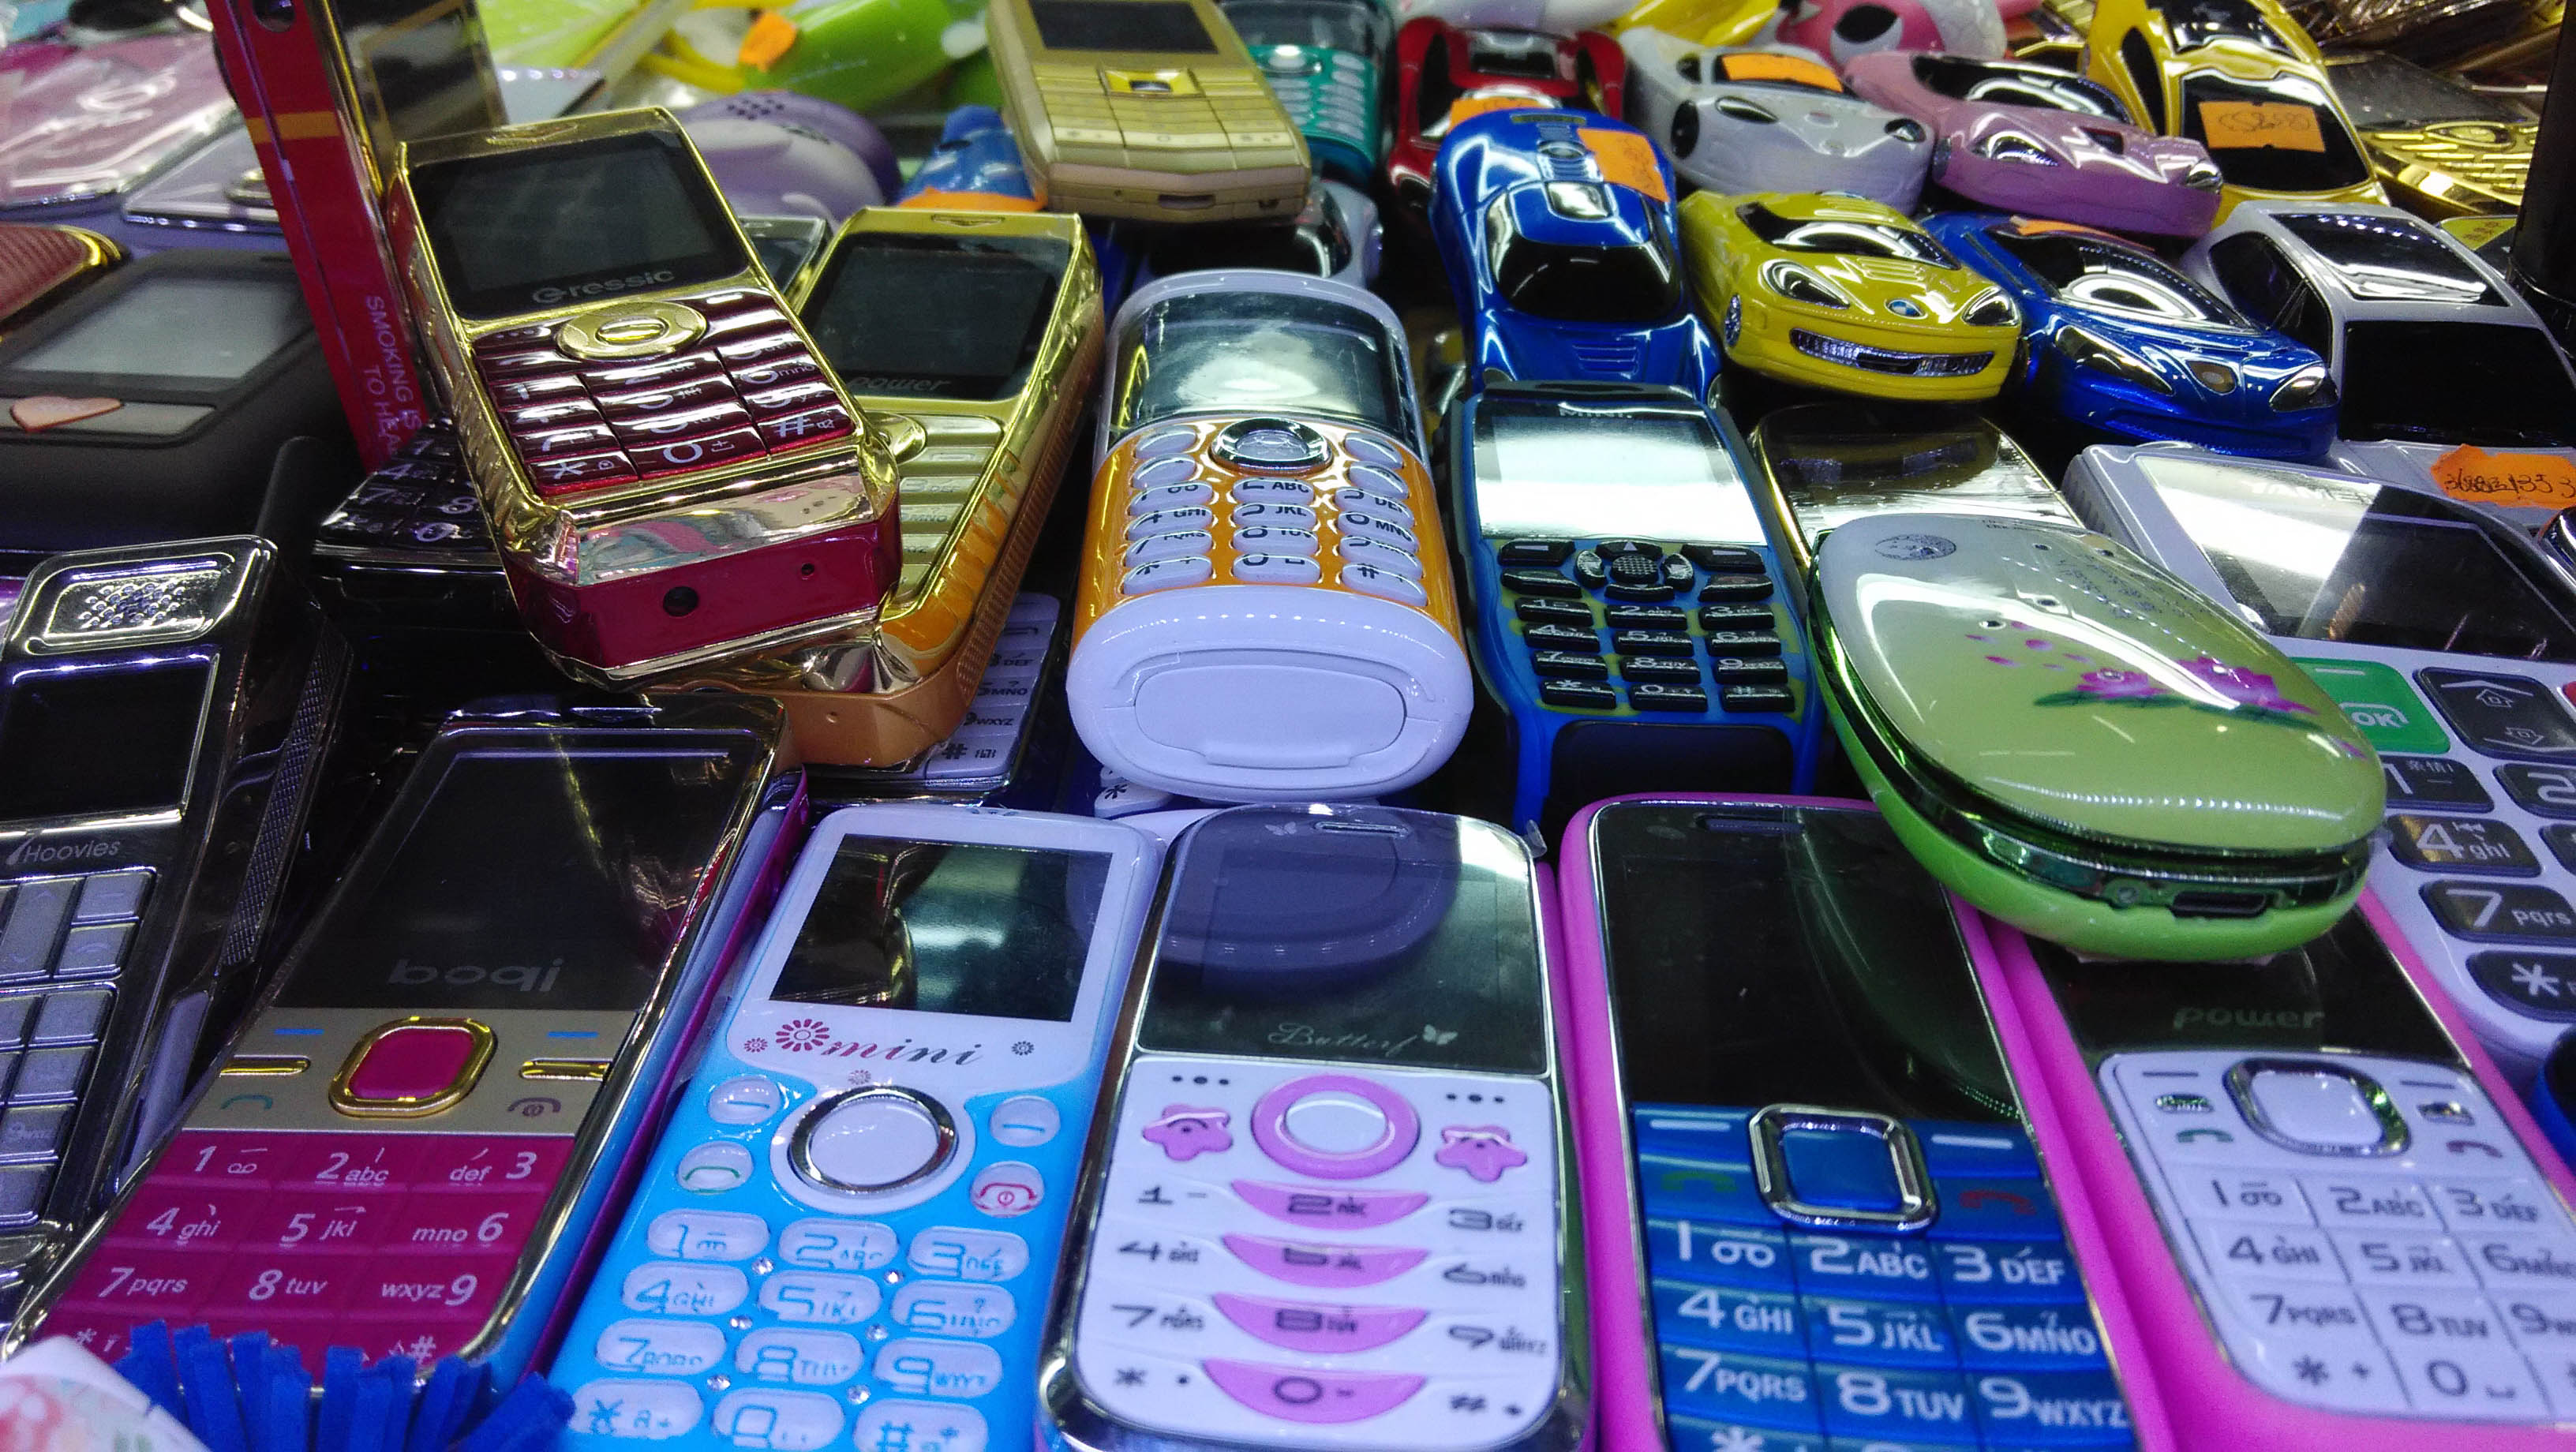 A selection of older counterfeit phones, now being phased out for super fakes